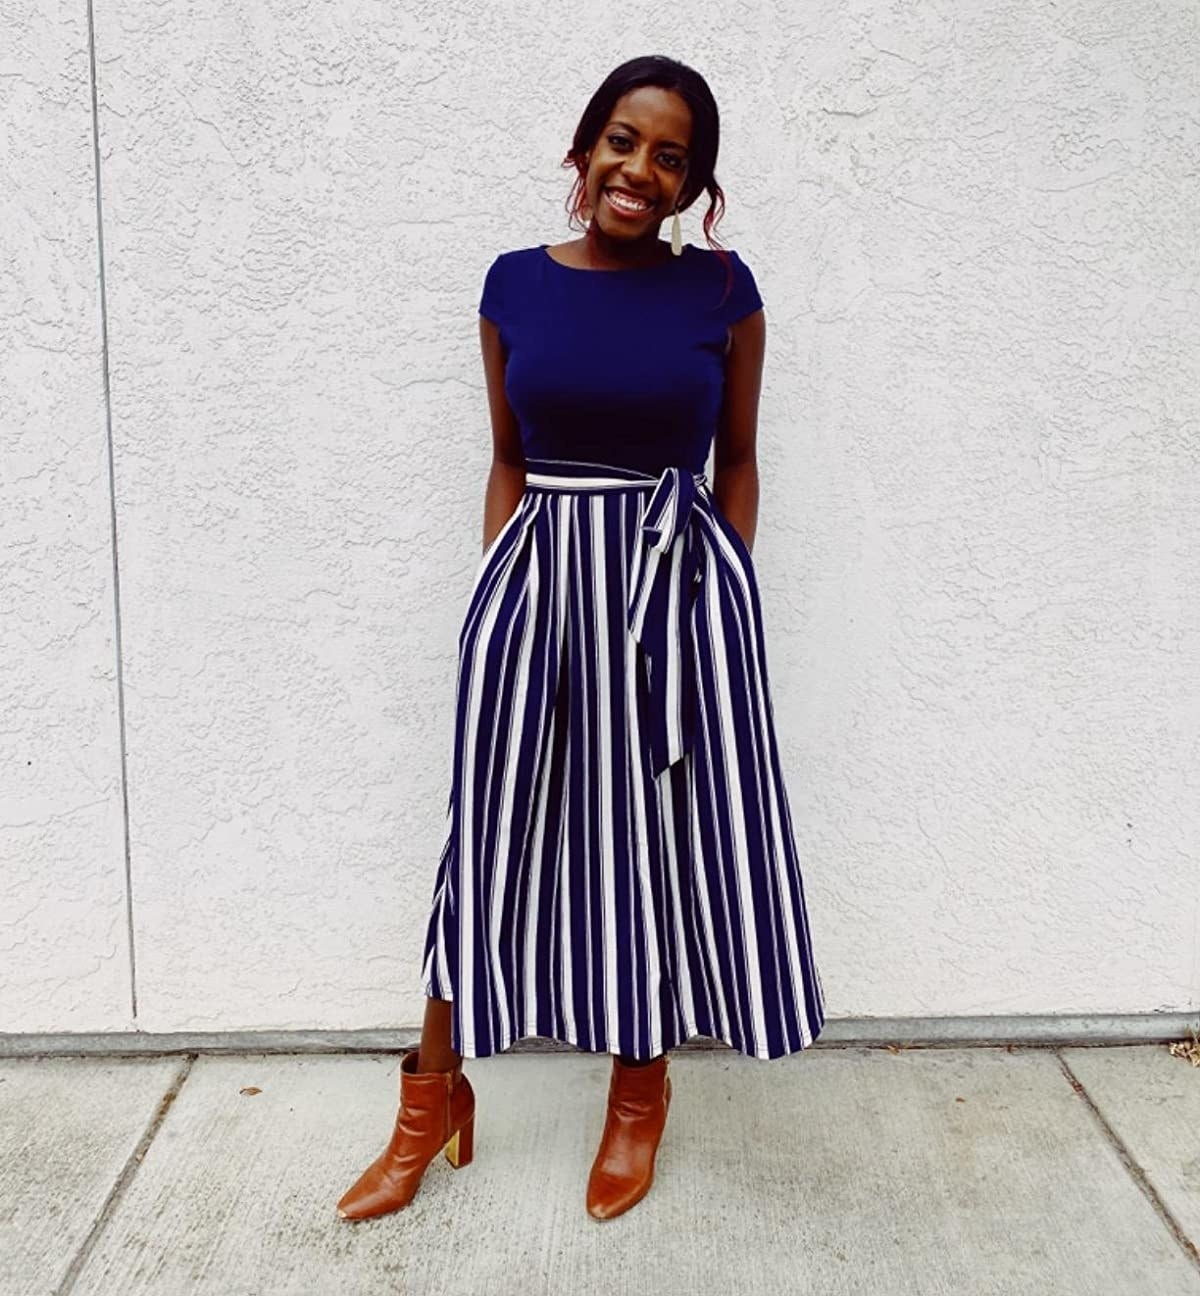 The dress in short-sleeve, with blue top and blue-and-white striped bottom